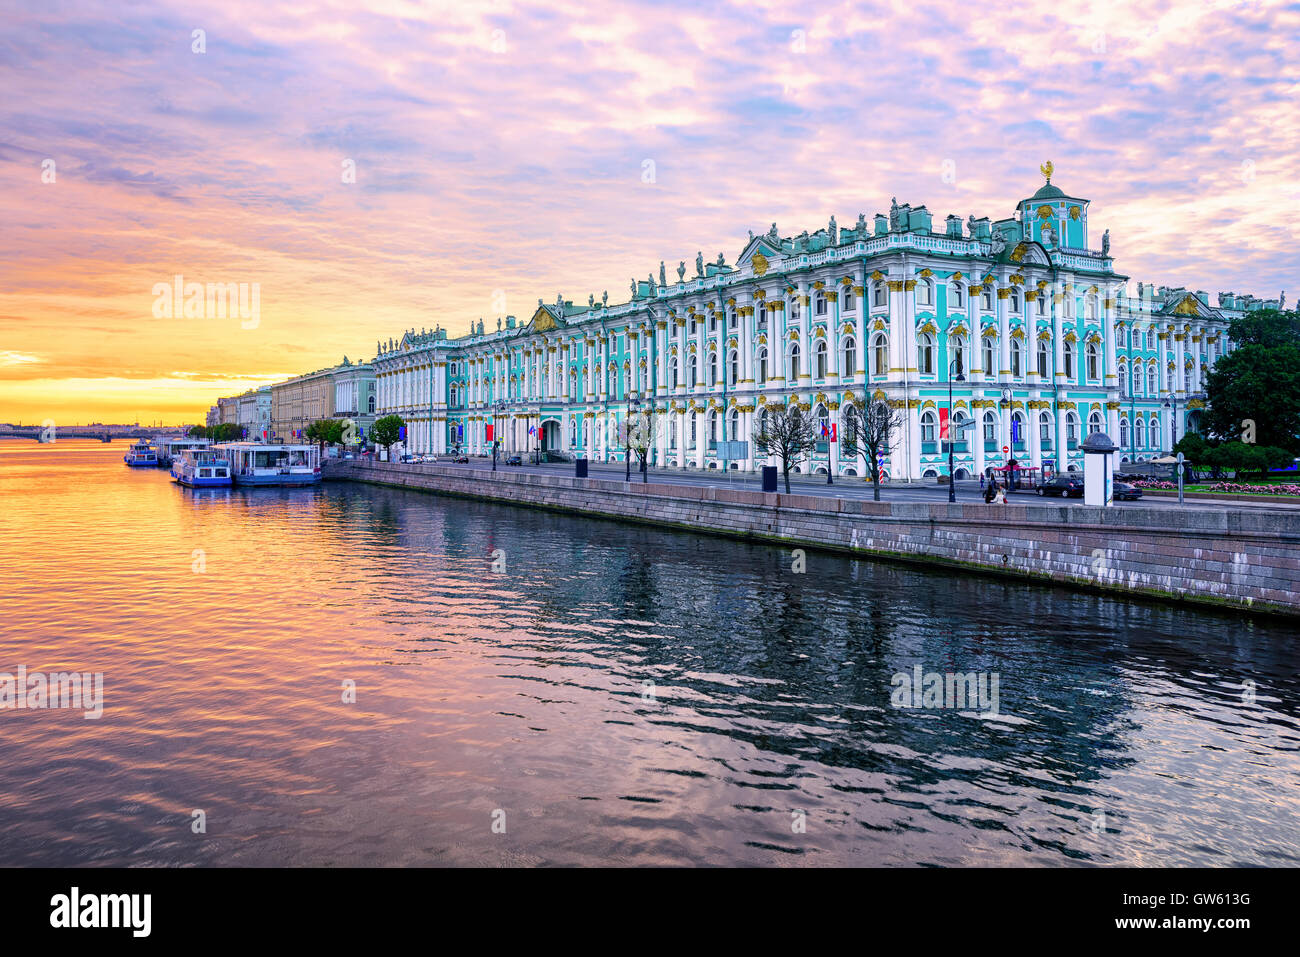 Winter Palace building housing Hermitage museum reflects in Neva river on dramatic sunrise, St Petersburg, Russia - Stock Image